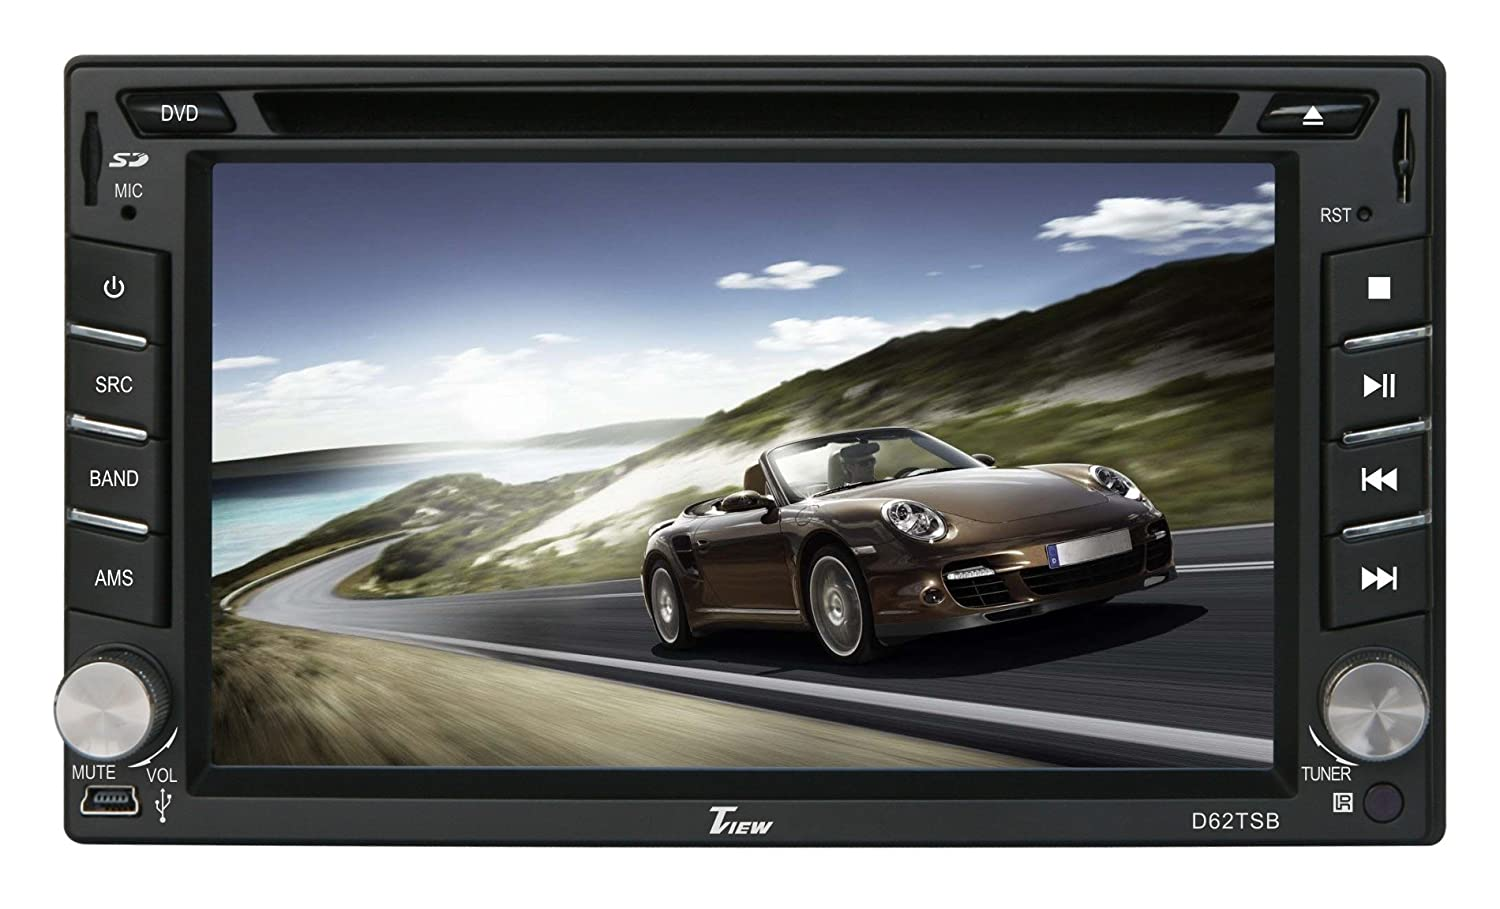 71N8 eVkMJL._SL1500_ amazon com tview d62tsb 6 2 inch double din touch screen with  at crackthecode.co